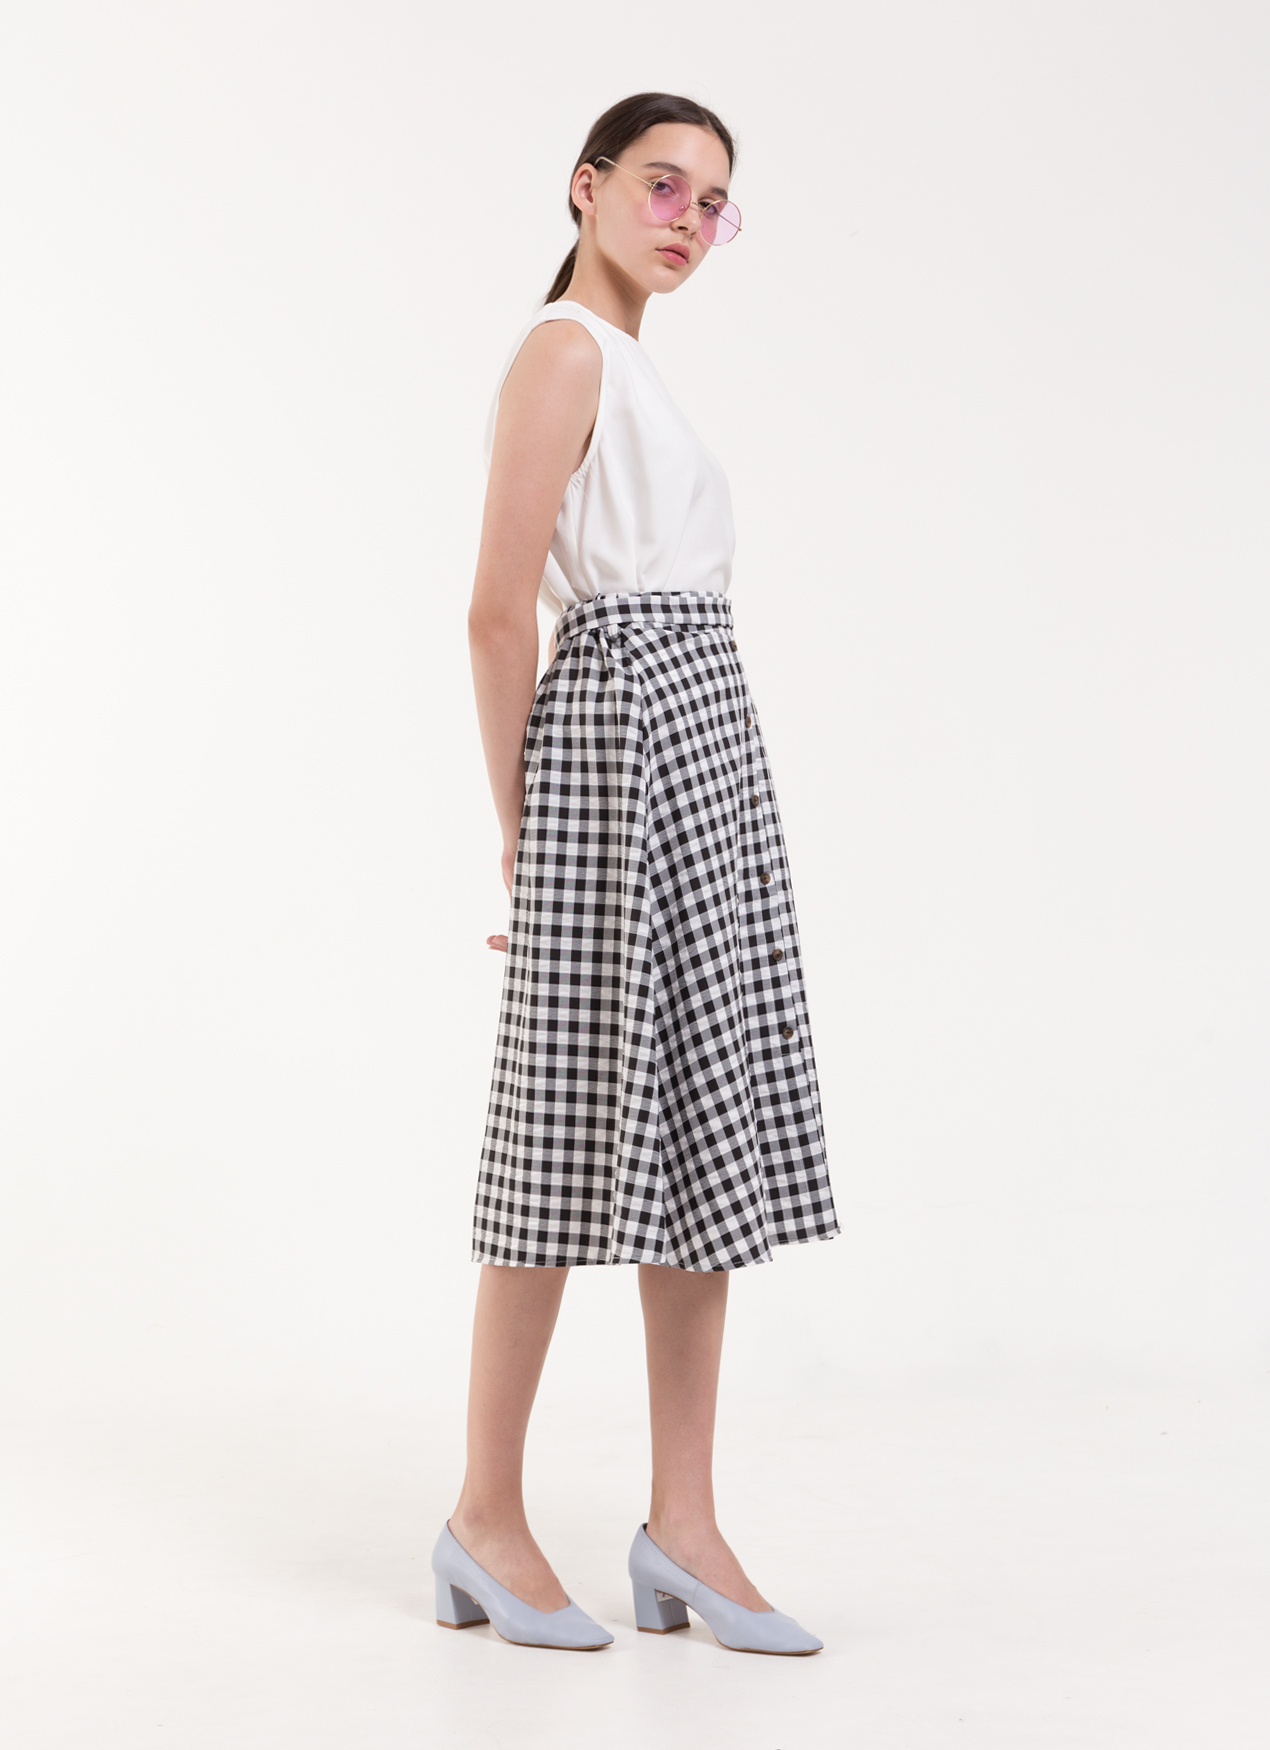 BOWN Andrea Skirt - Black